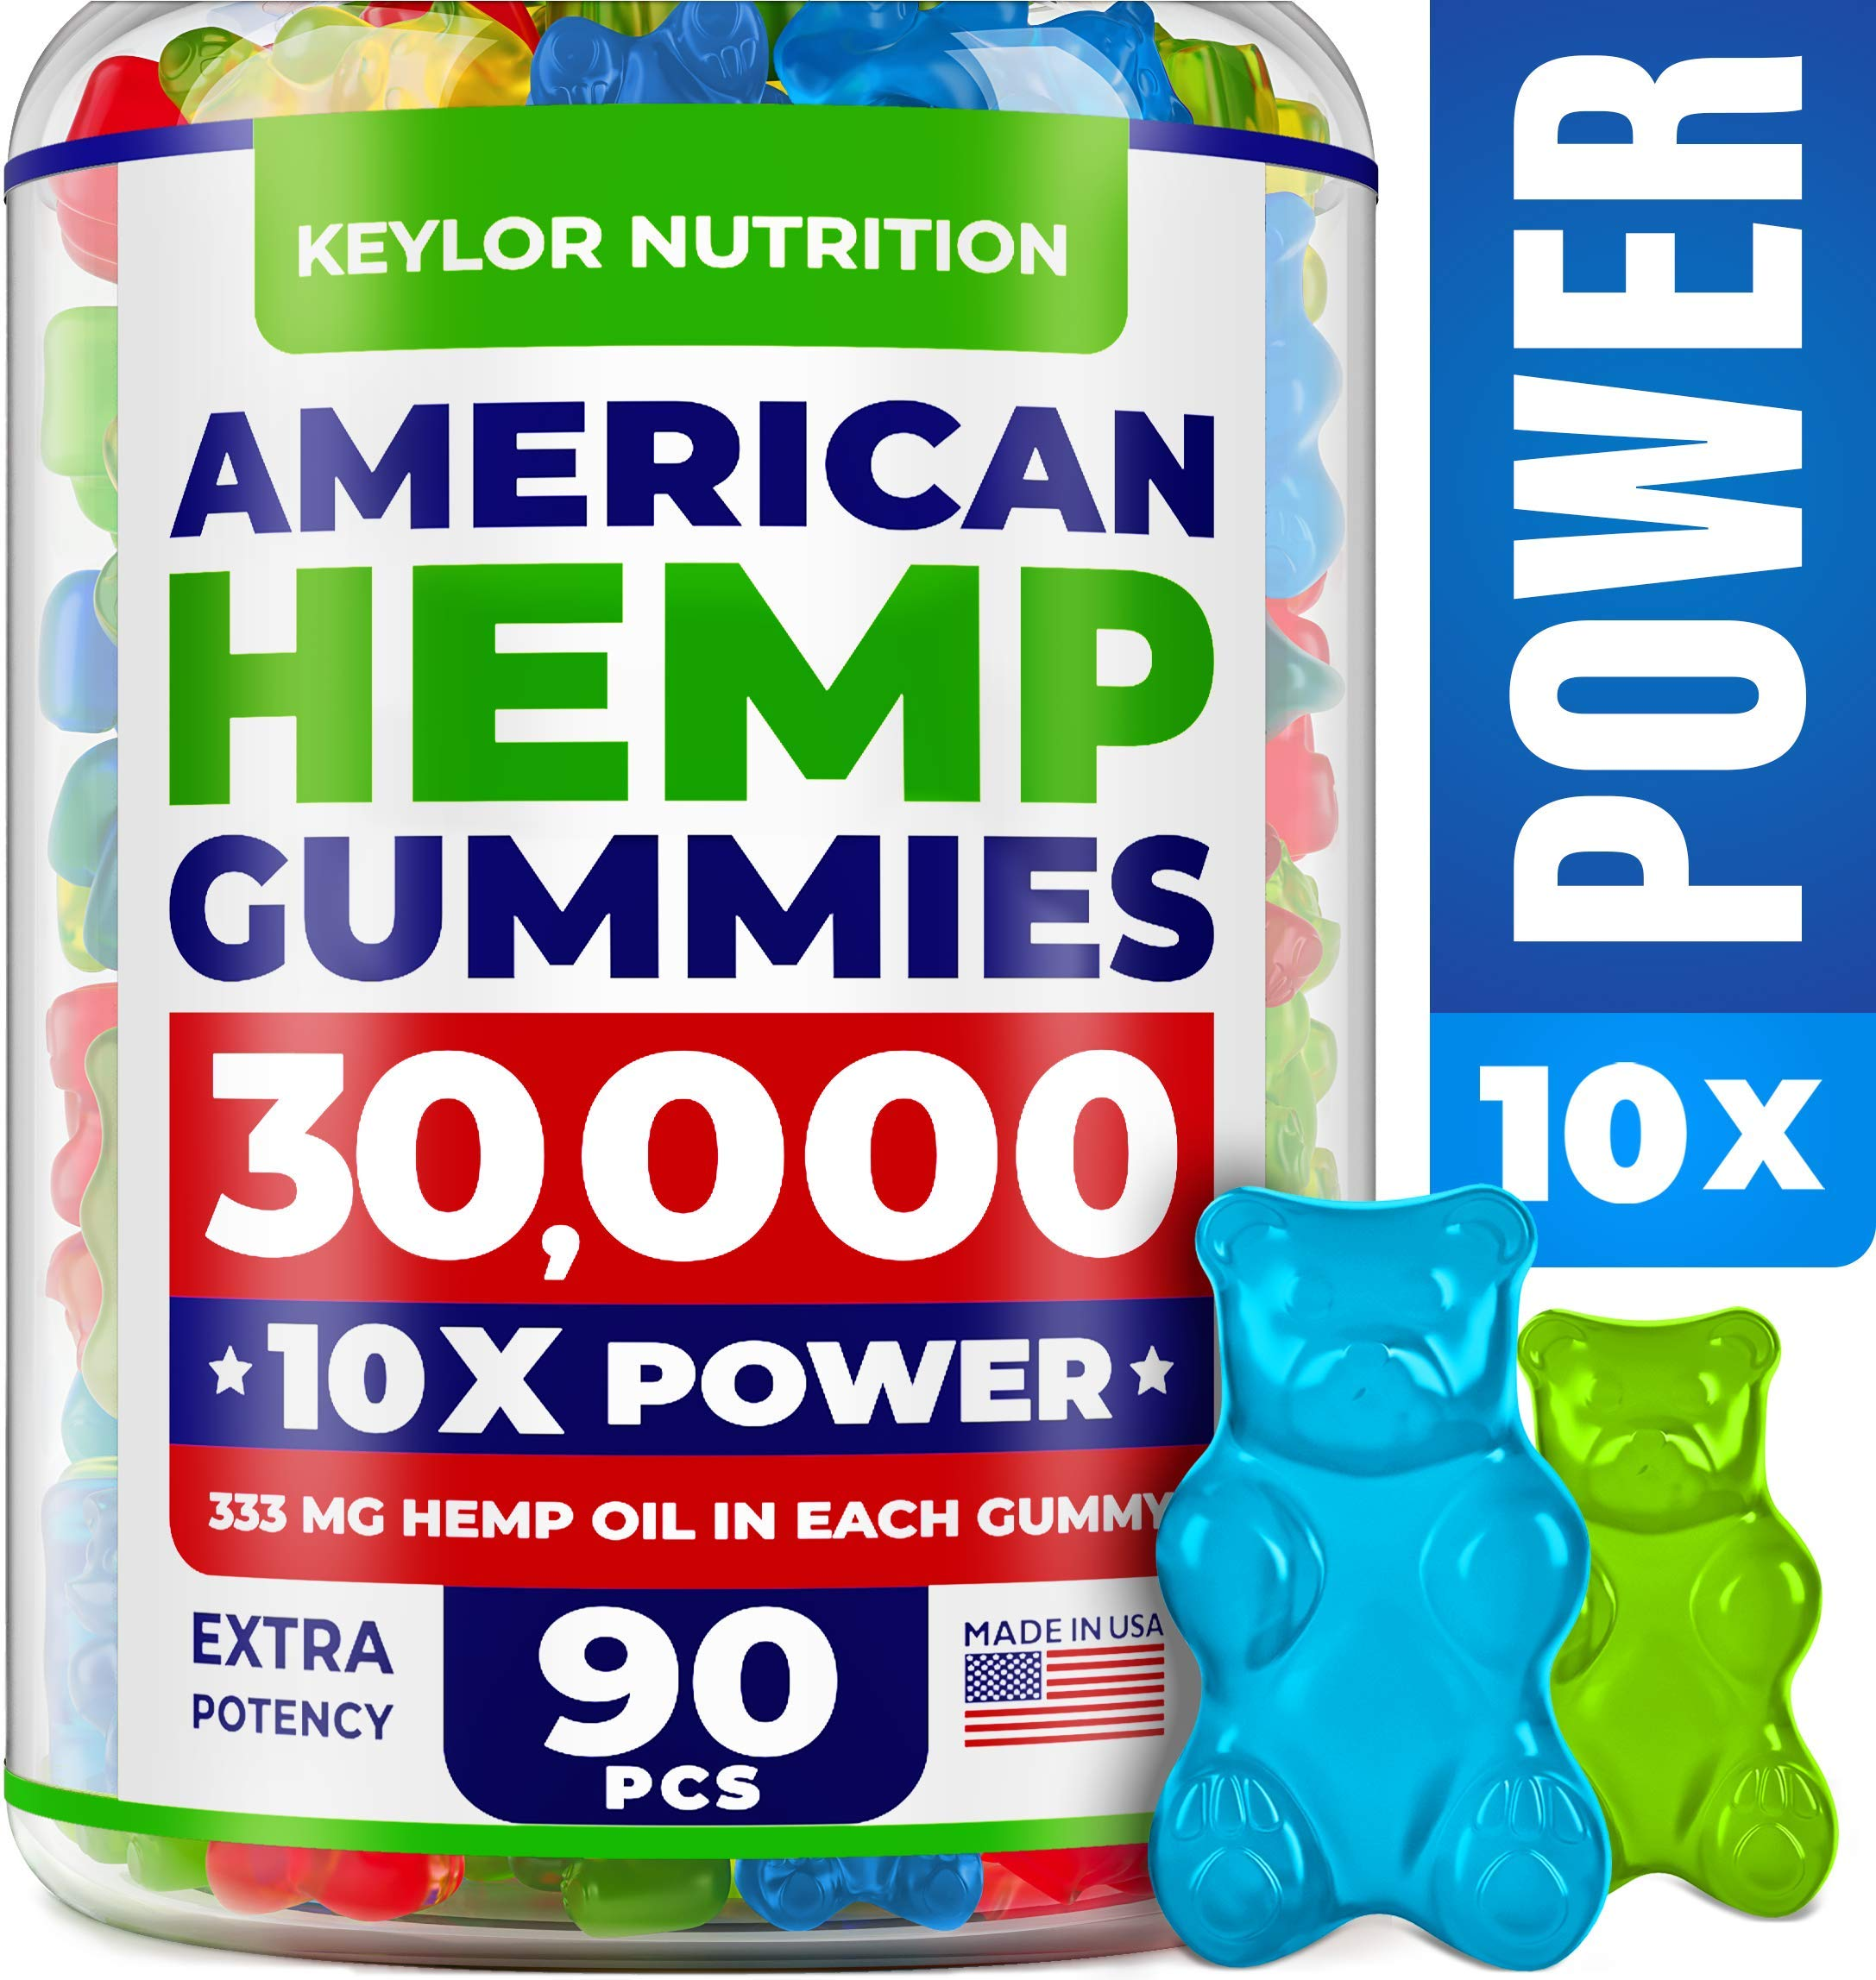 KEYLOR NUTRITION Premium Hemp Gummies 240,000 – All Natural Ingredients – Relief for Stress, Inflammation, Sleep, Anxiety, Depression – Vitamins & Omega 3,6,9 – Made in The USA – 60 pcs